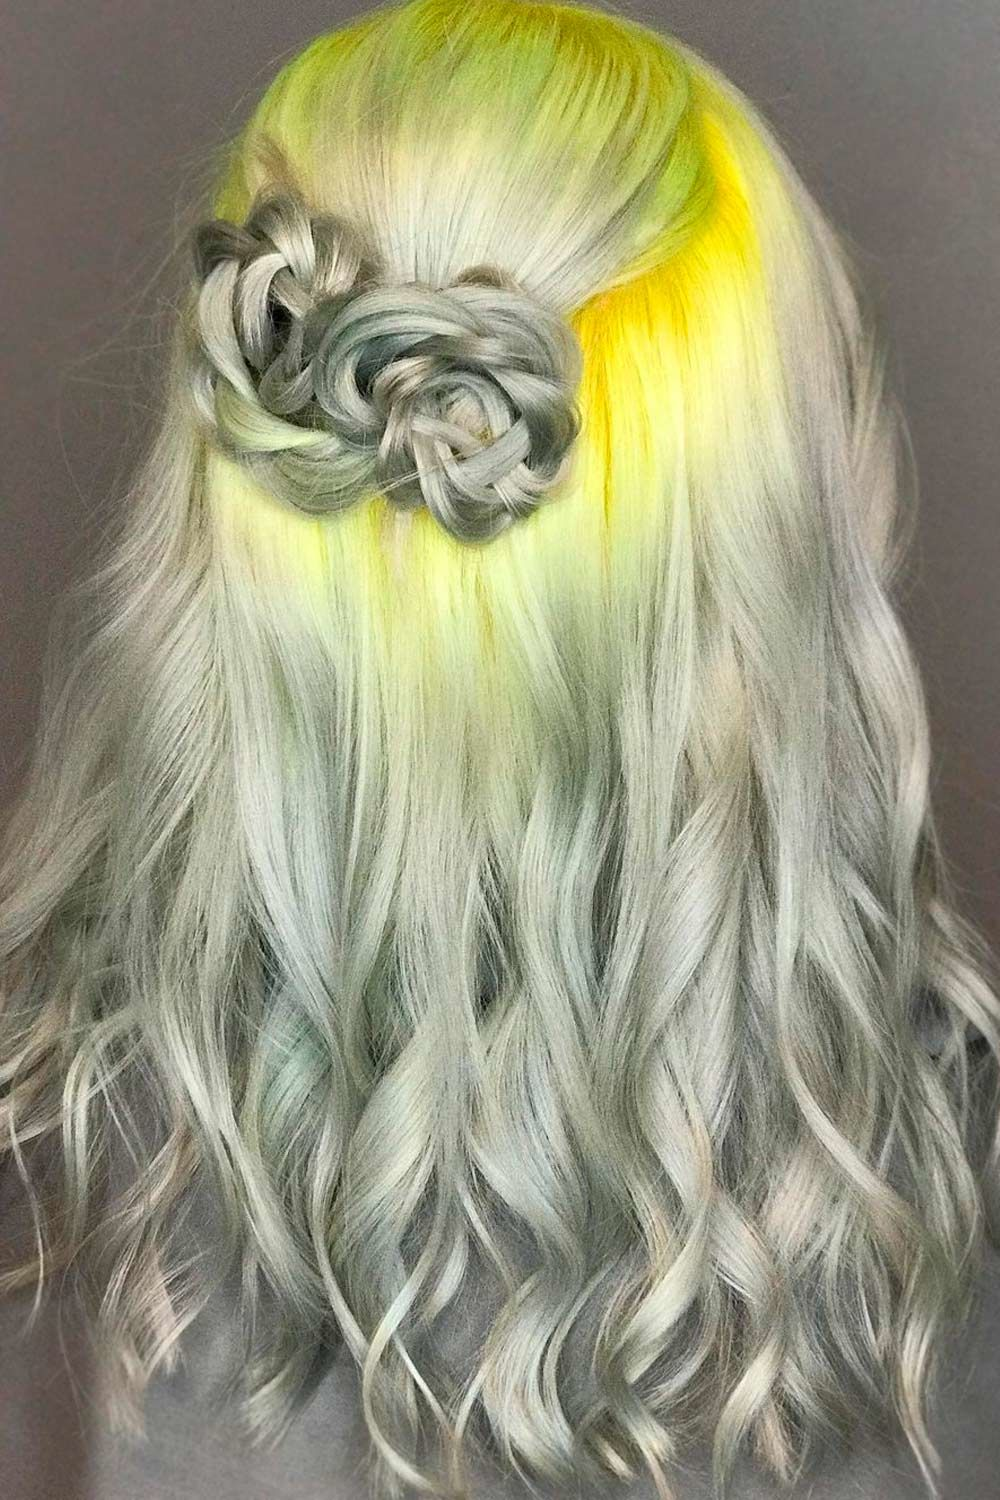 Salt And Pepper With Neon Yellow, salt-and-pepper hair, peppered hair